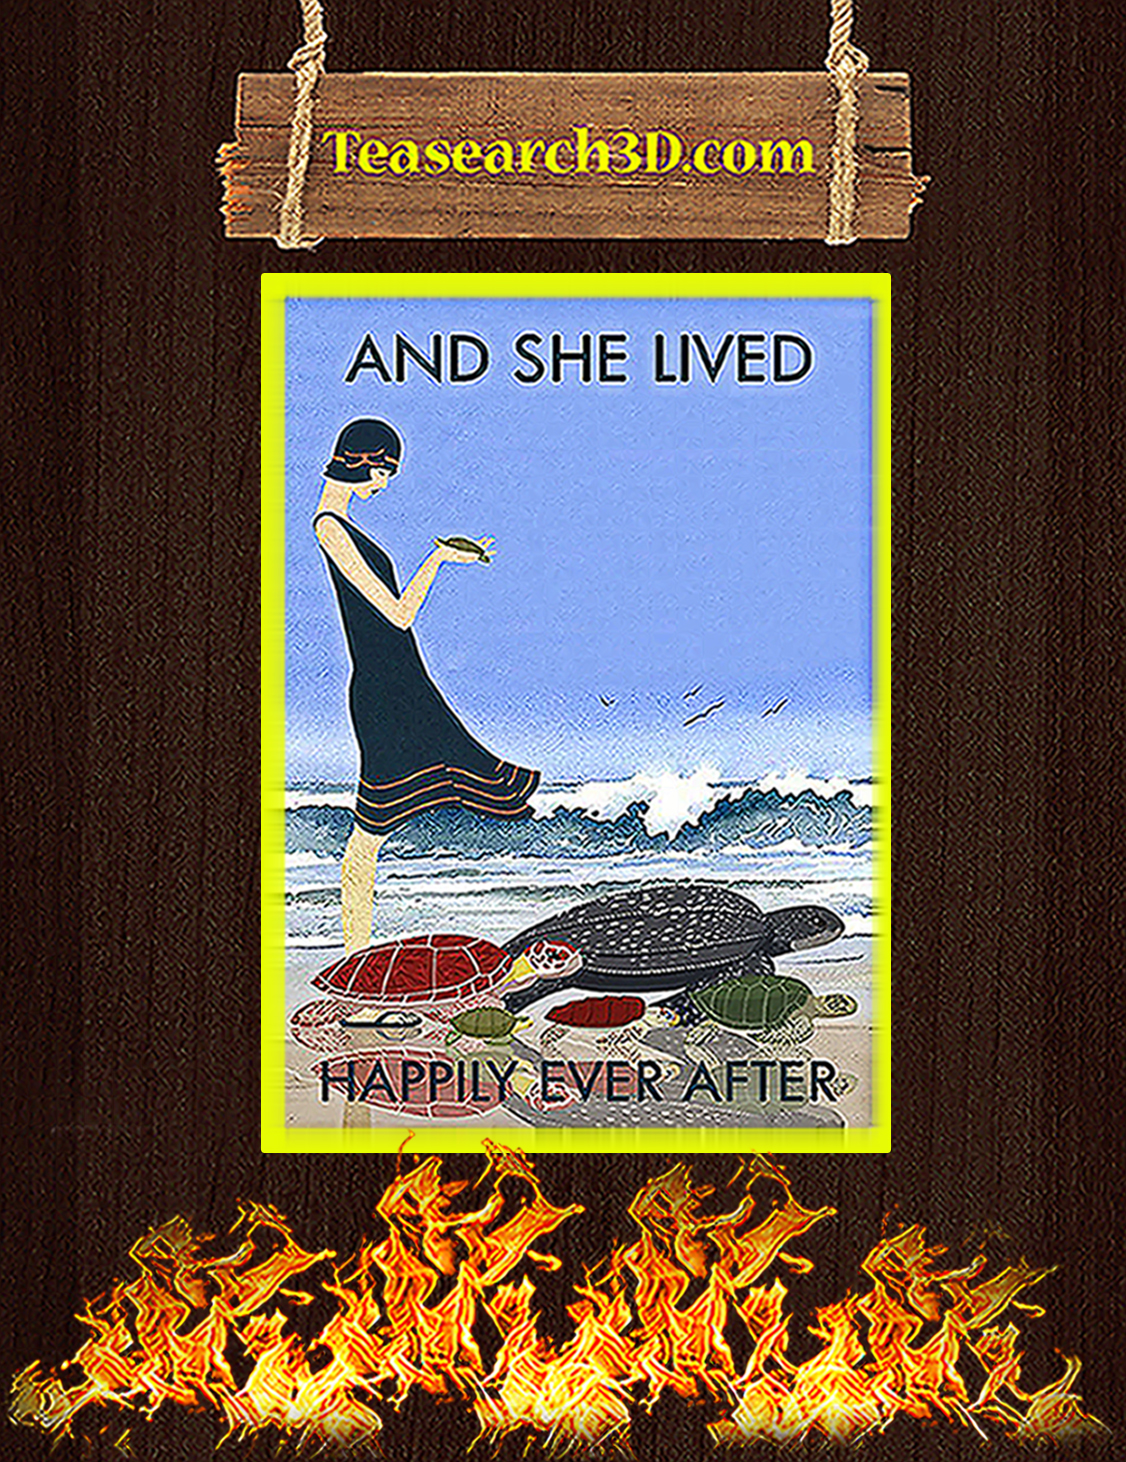 Beach and turtles and she lived happily ever after poster A3